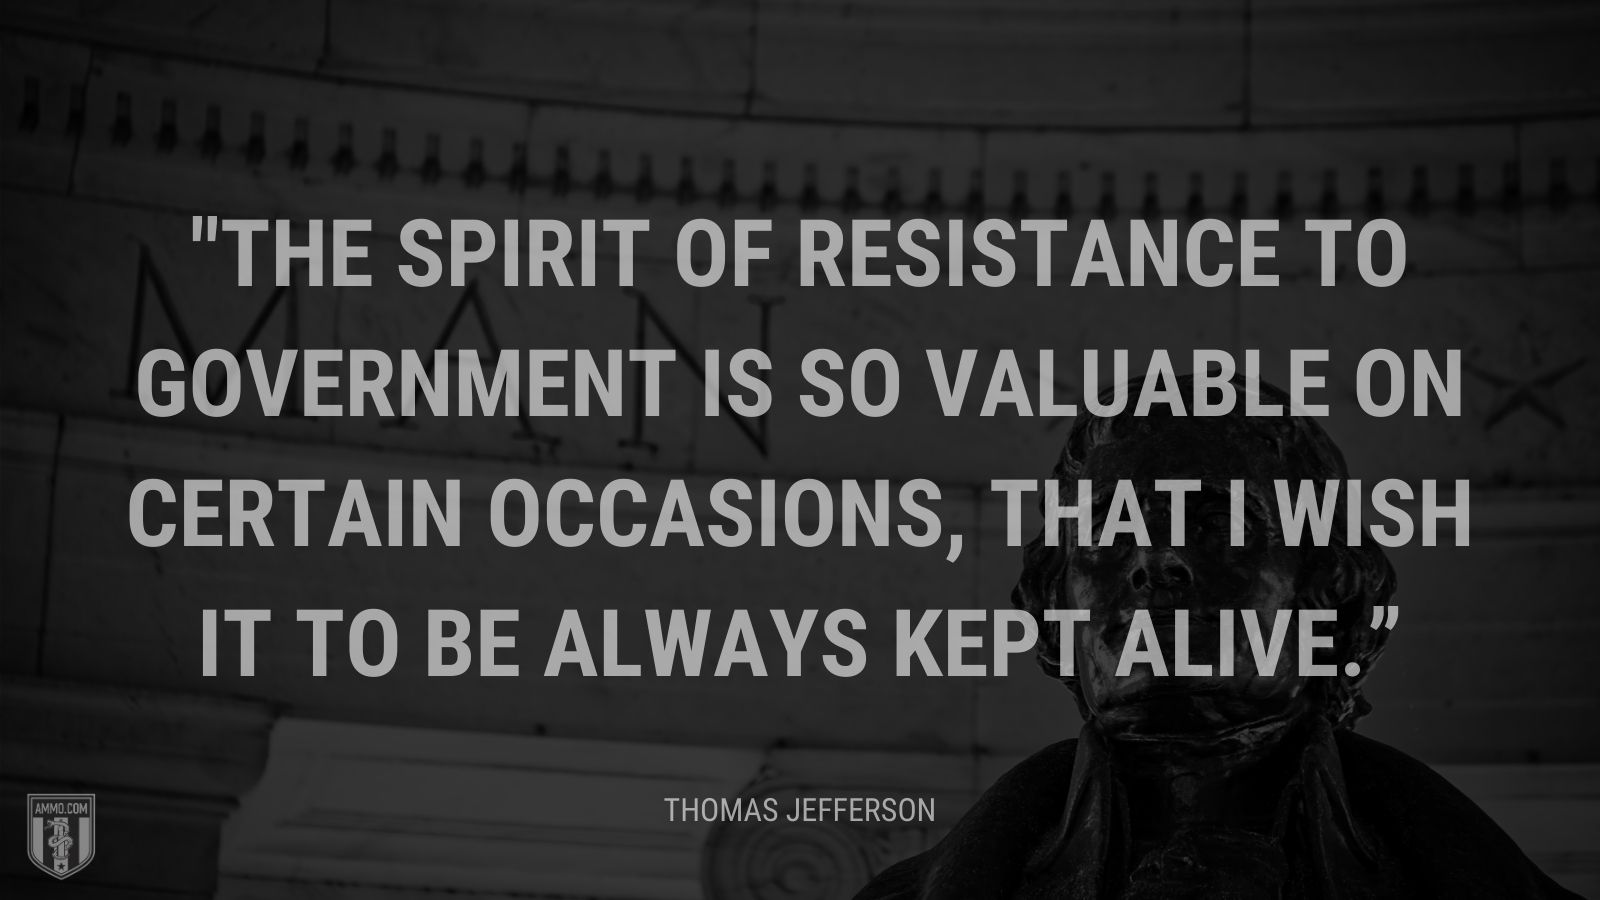 """The spirit of resistance to government is so valuable on certain occasions, that I wish it to be always kept alive."" - Thomas Jefferson"